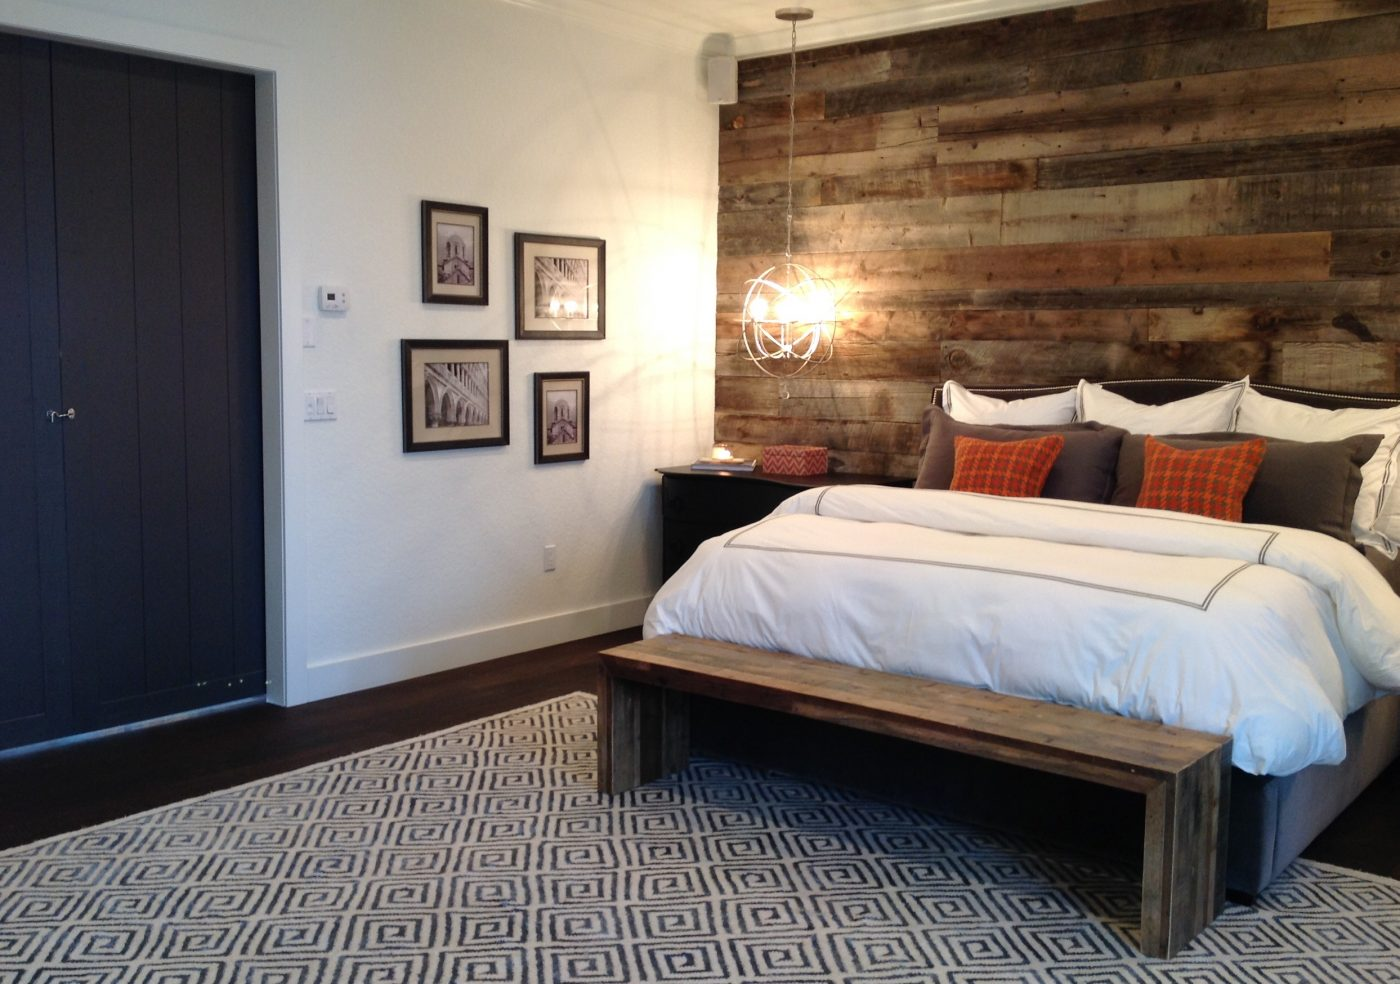 The new matte-finished, wood floors, and 100-year-old barn wood wall, truly gave these spaces a natural, organic feel!